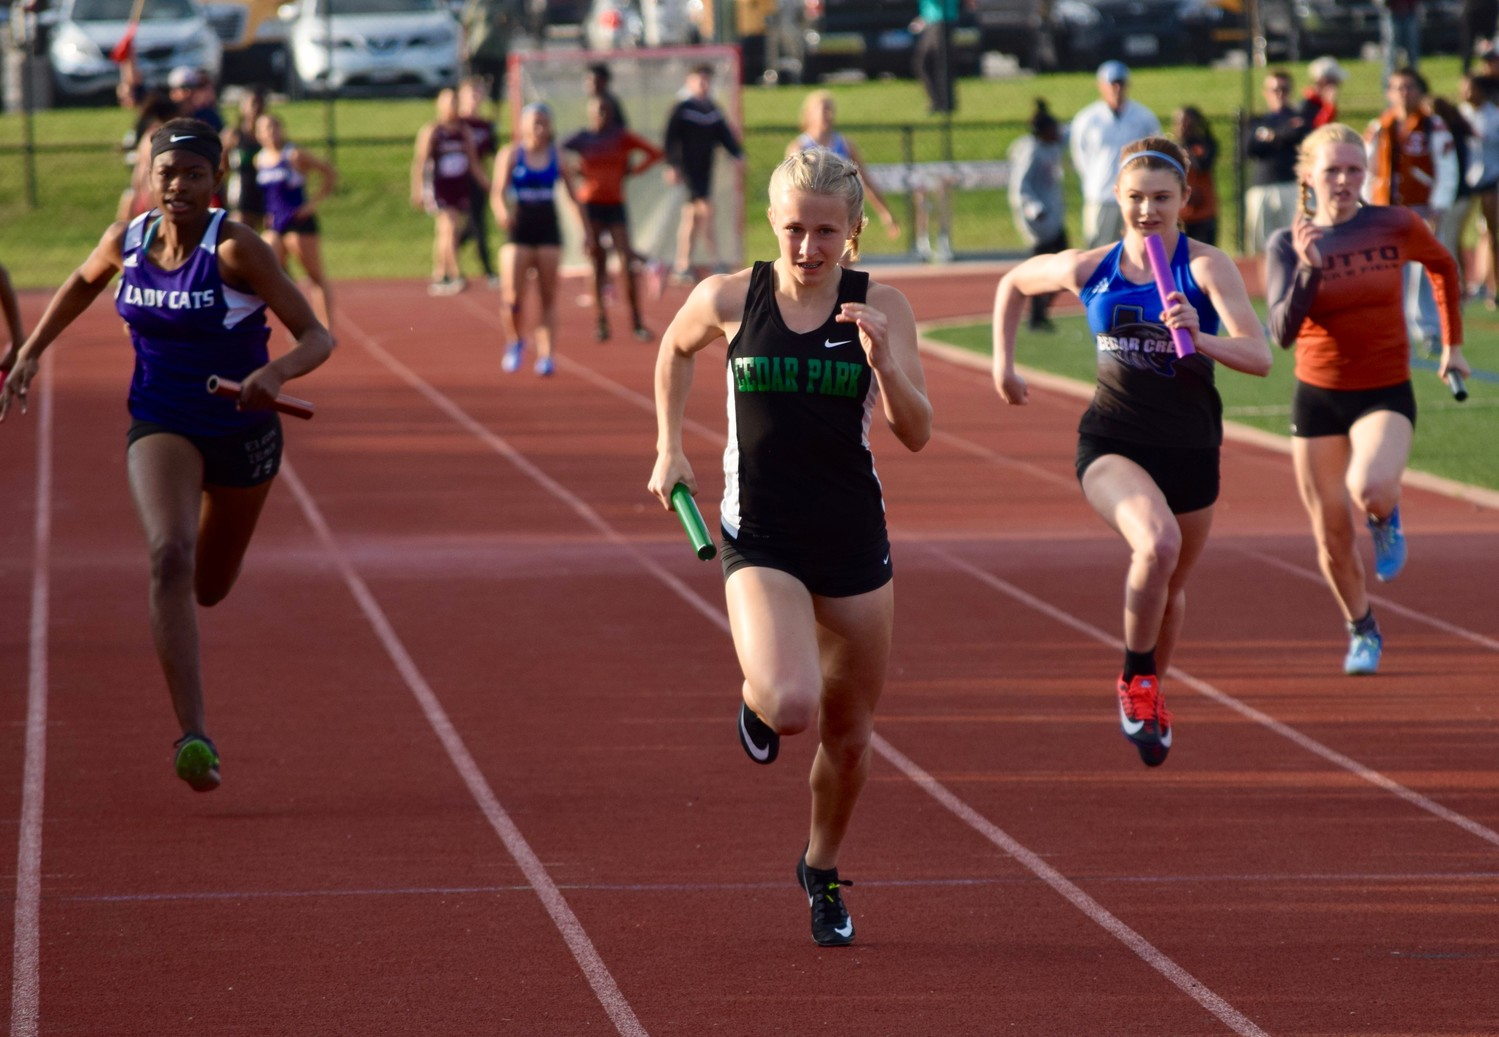 Megan Wilcox and the Cedar Park girls' 4x100 meter relay team finished in second place at the District 19-5A track meet on Thursday. Wilcox also won the girls' 100-meter dash with a time of 11.92.